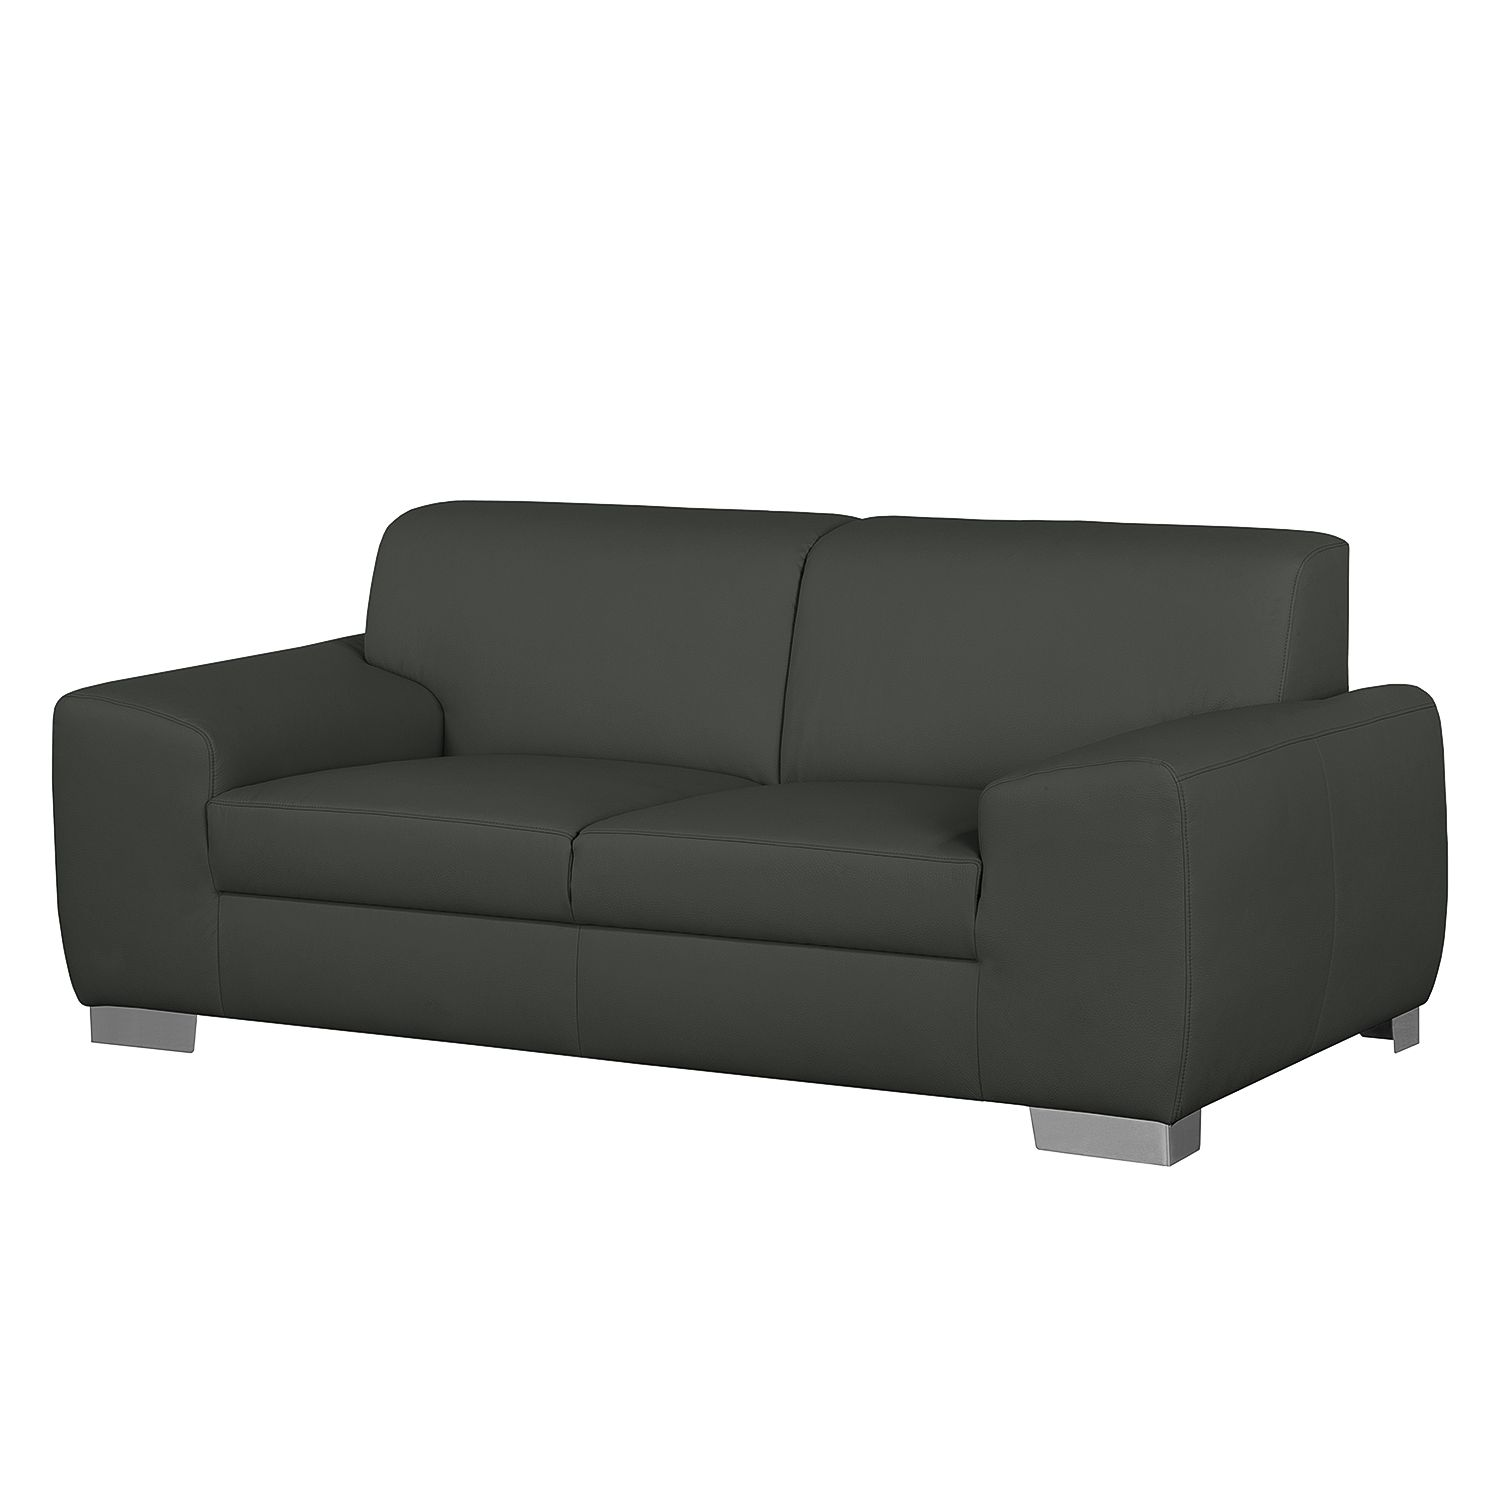 sofa bollon 2 sitzer kunstleder dunkelgrau fredriks bestellen. Black Bedroom Furniture Sets. Home Design Ideas